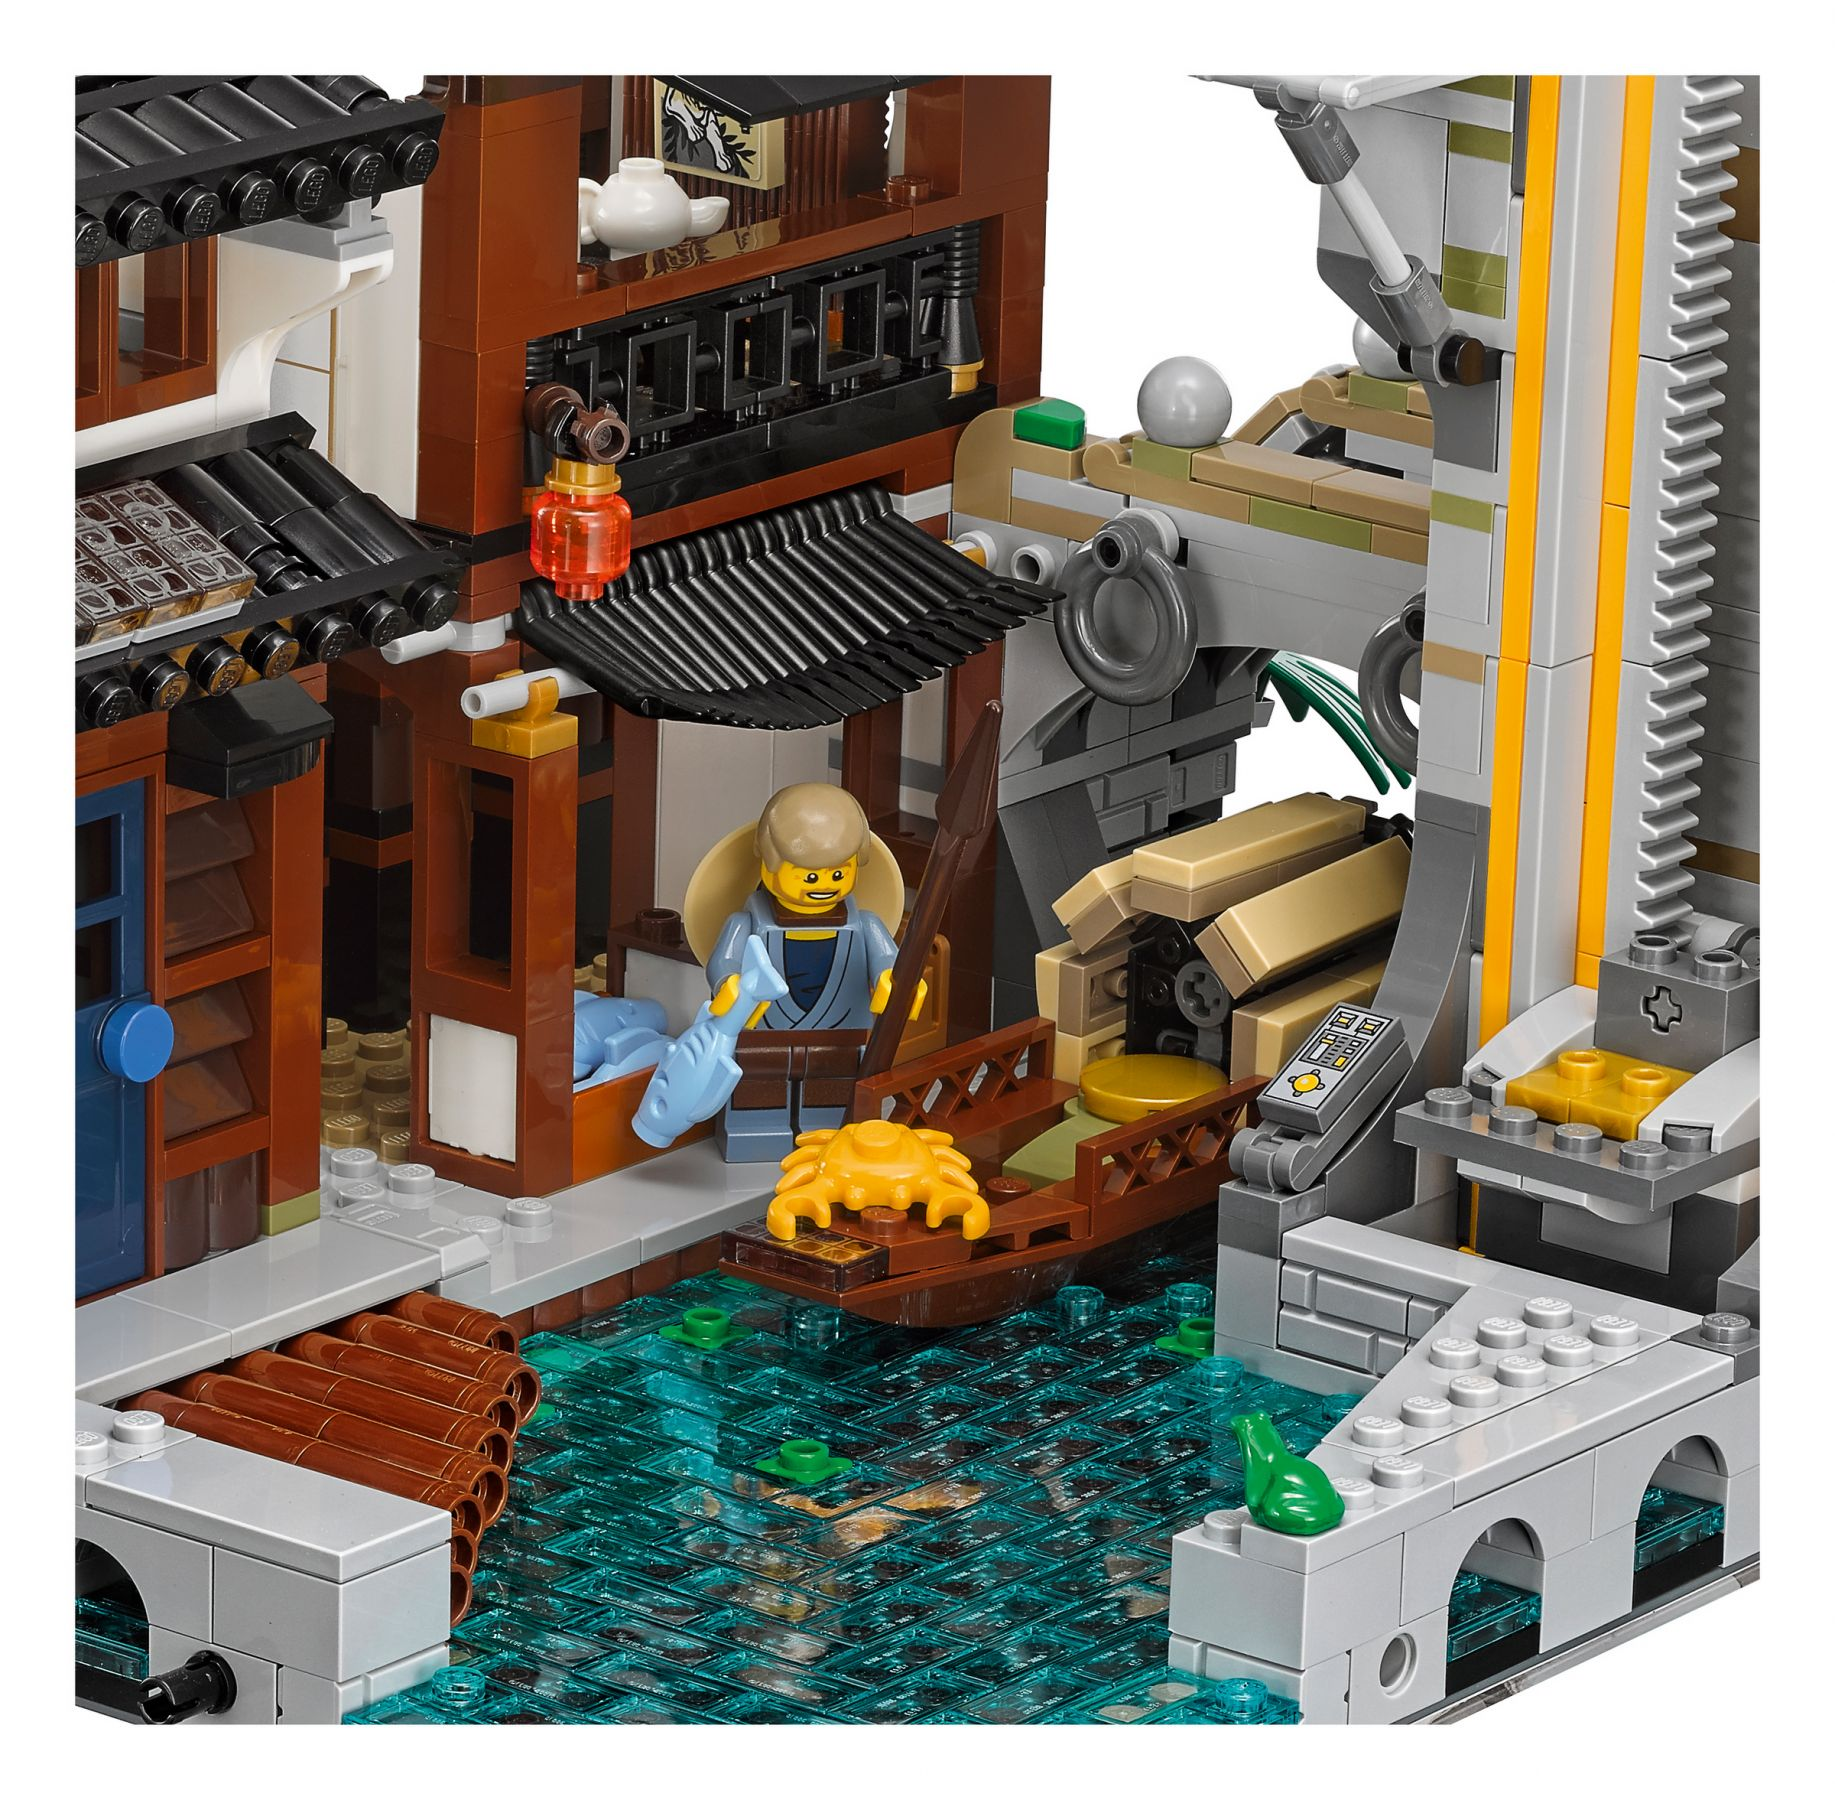 LEGO The LEGO Ninjago Movie 70620 Ninjago City LEGO_70620_alt16.jpg